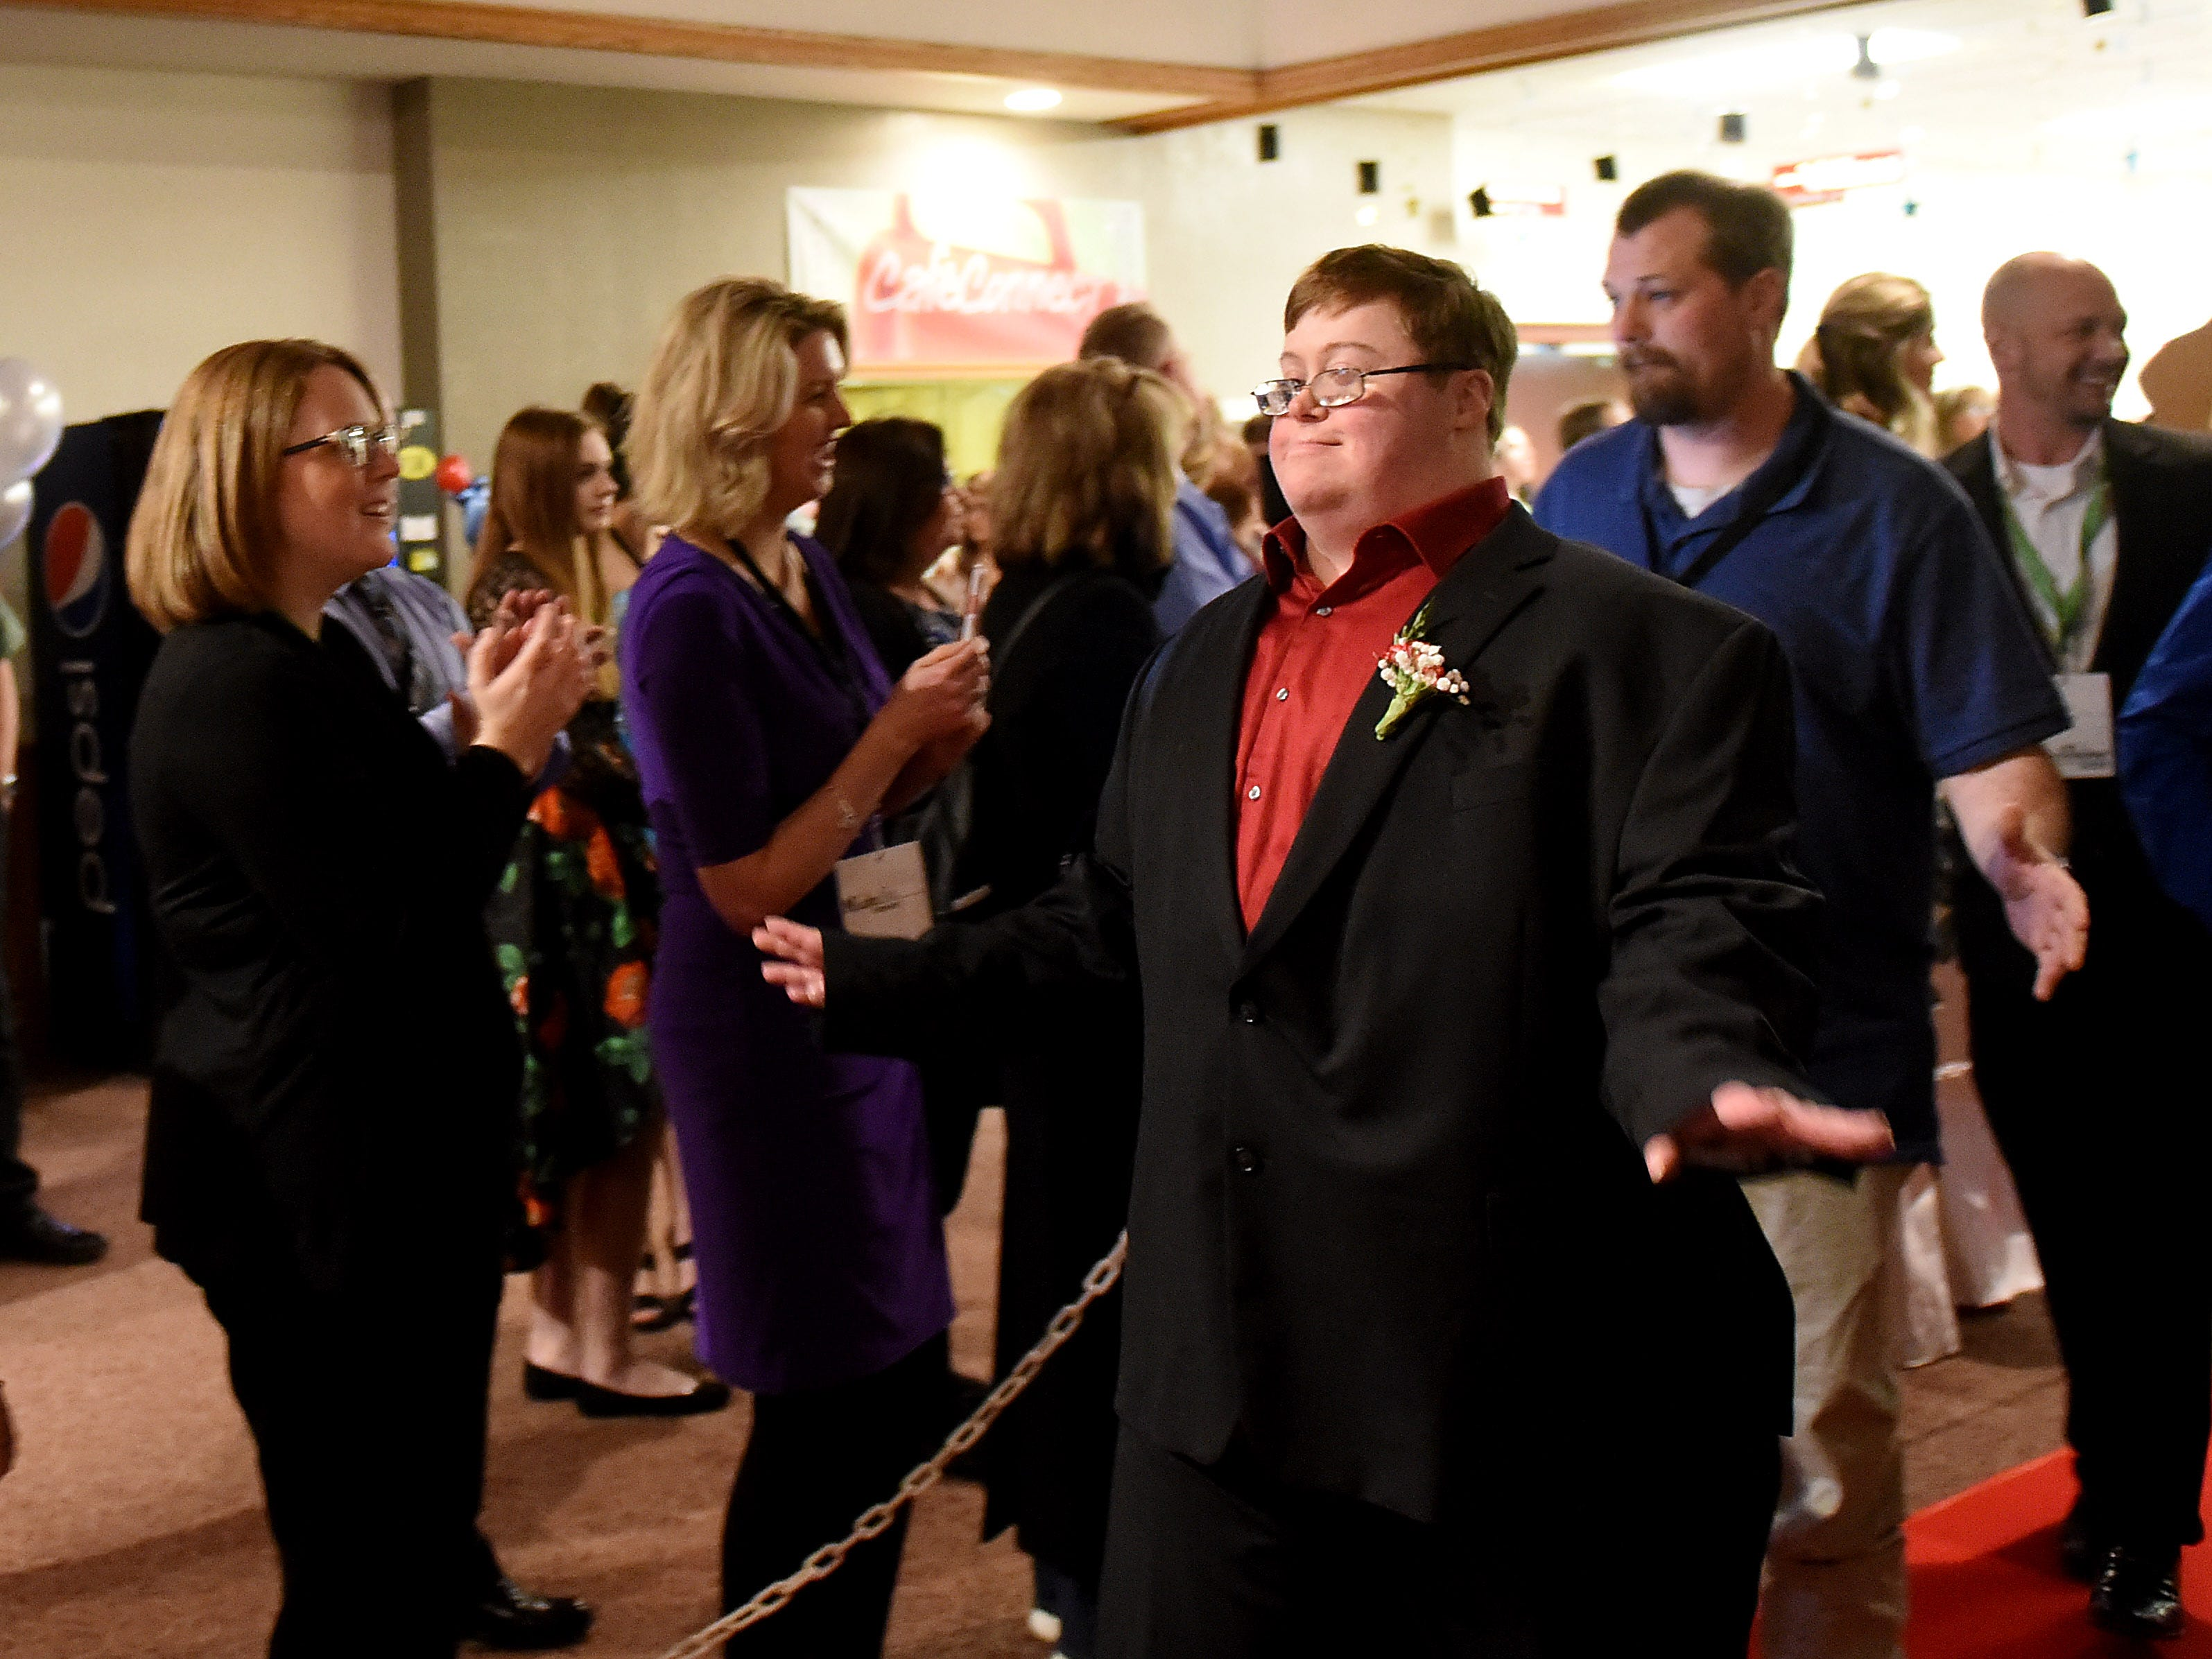 The annual Night to Shine dance, sponsored by the Tim Tebow Foundation, on Friday, Feb. 8, 2019 at Community Church in Newark. Churches around the world hosted prom night experiences for guests with special needs. Over 200 guests with special needs enjoyed dinner, hair and makeup, karaoke, and a night of dancing.